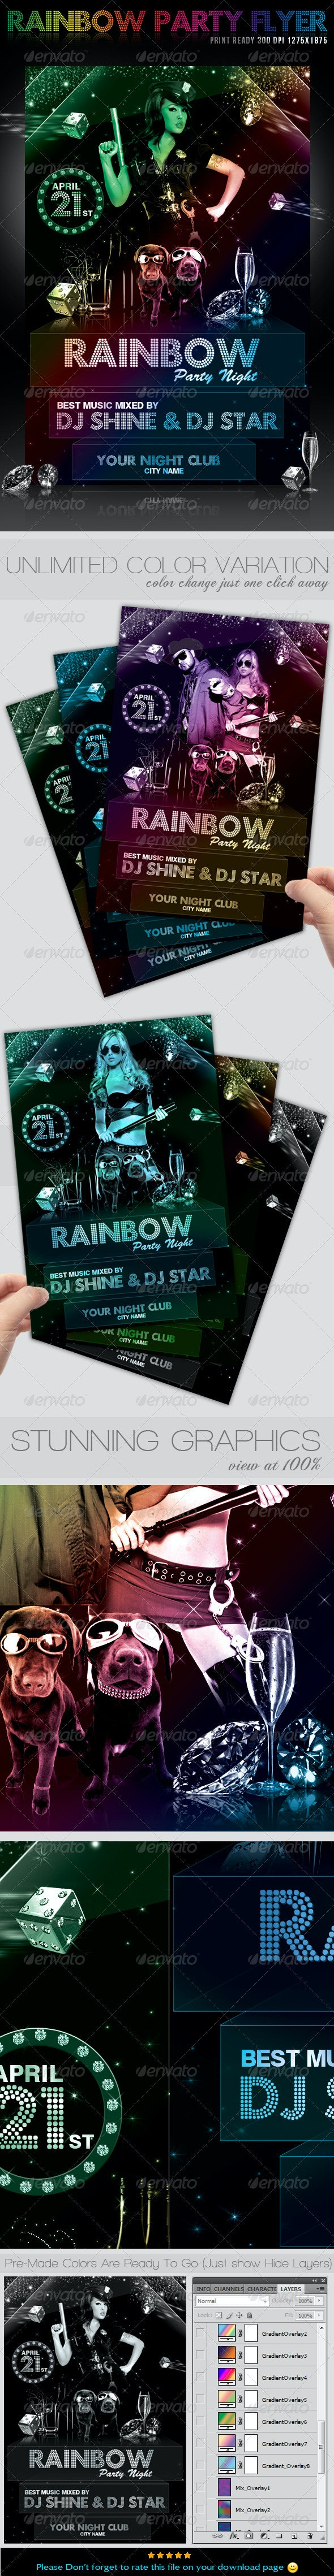 Rainbow Party Event Flyer - Clubs & Parties Events